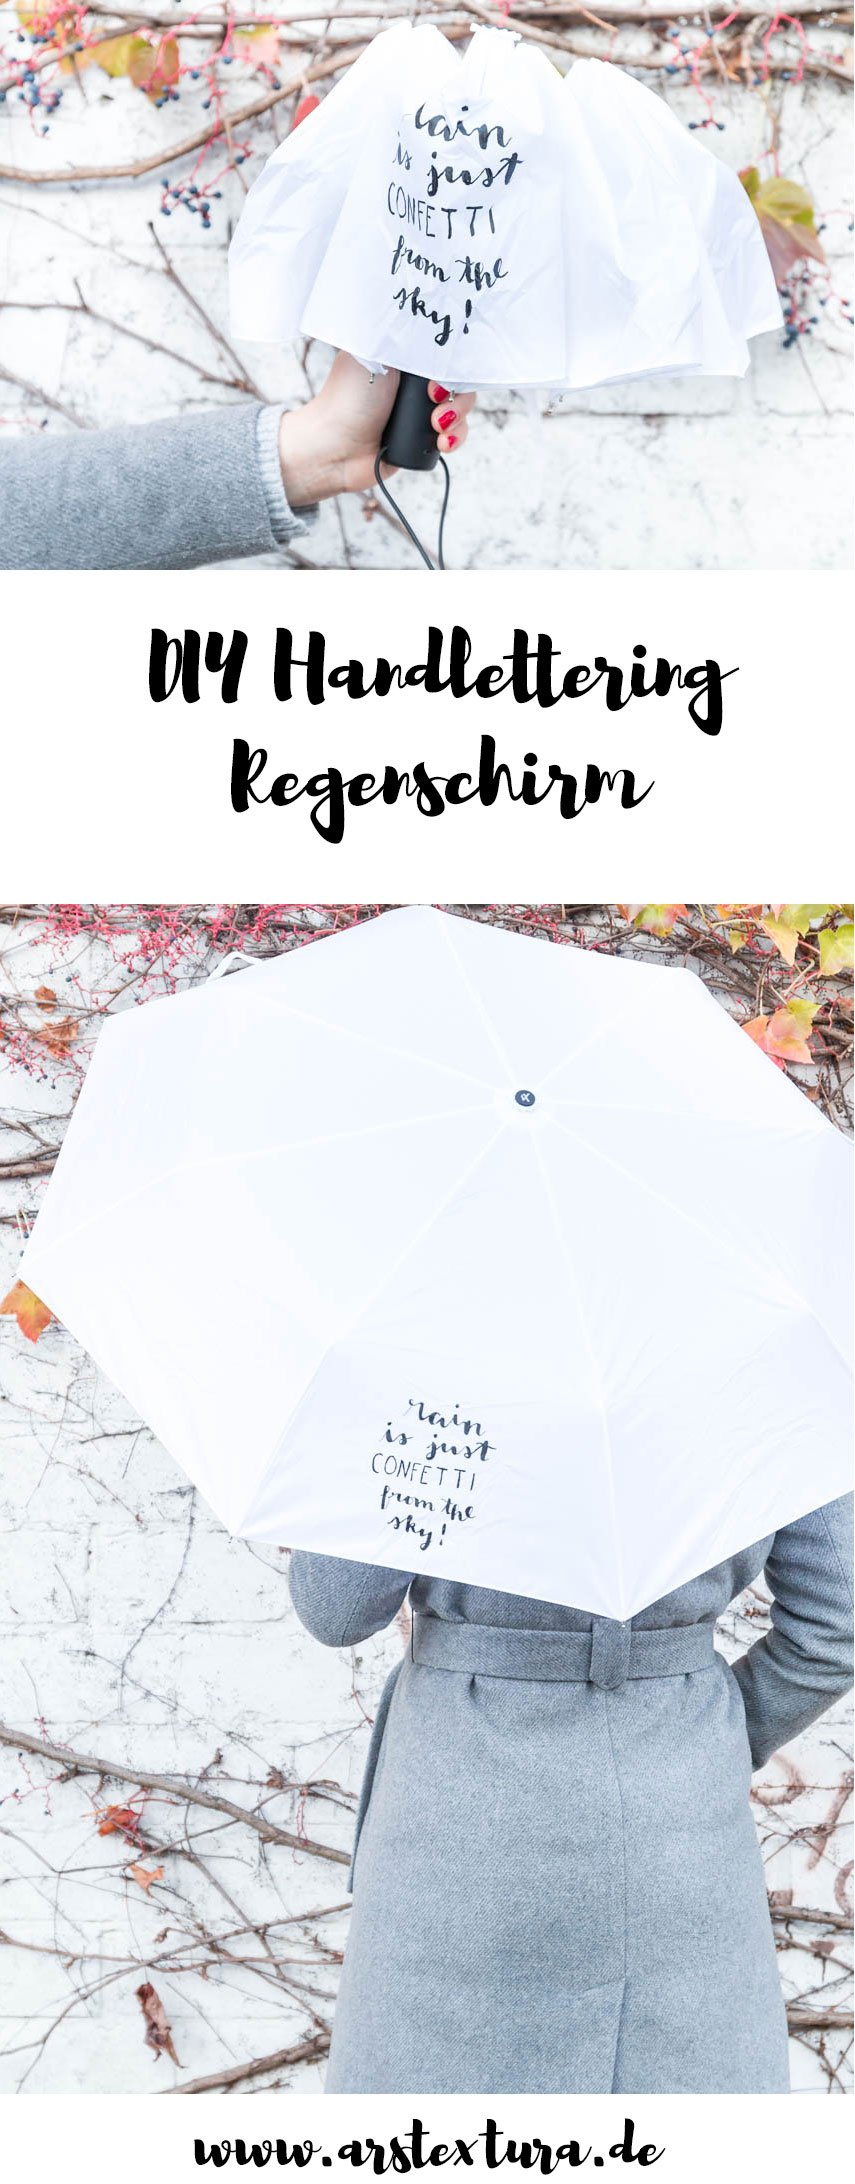 DIY Regenschirm mit Handlettering - DIY umbrella painted - rain is just confetti from the sky